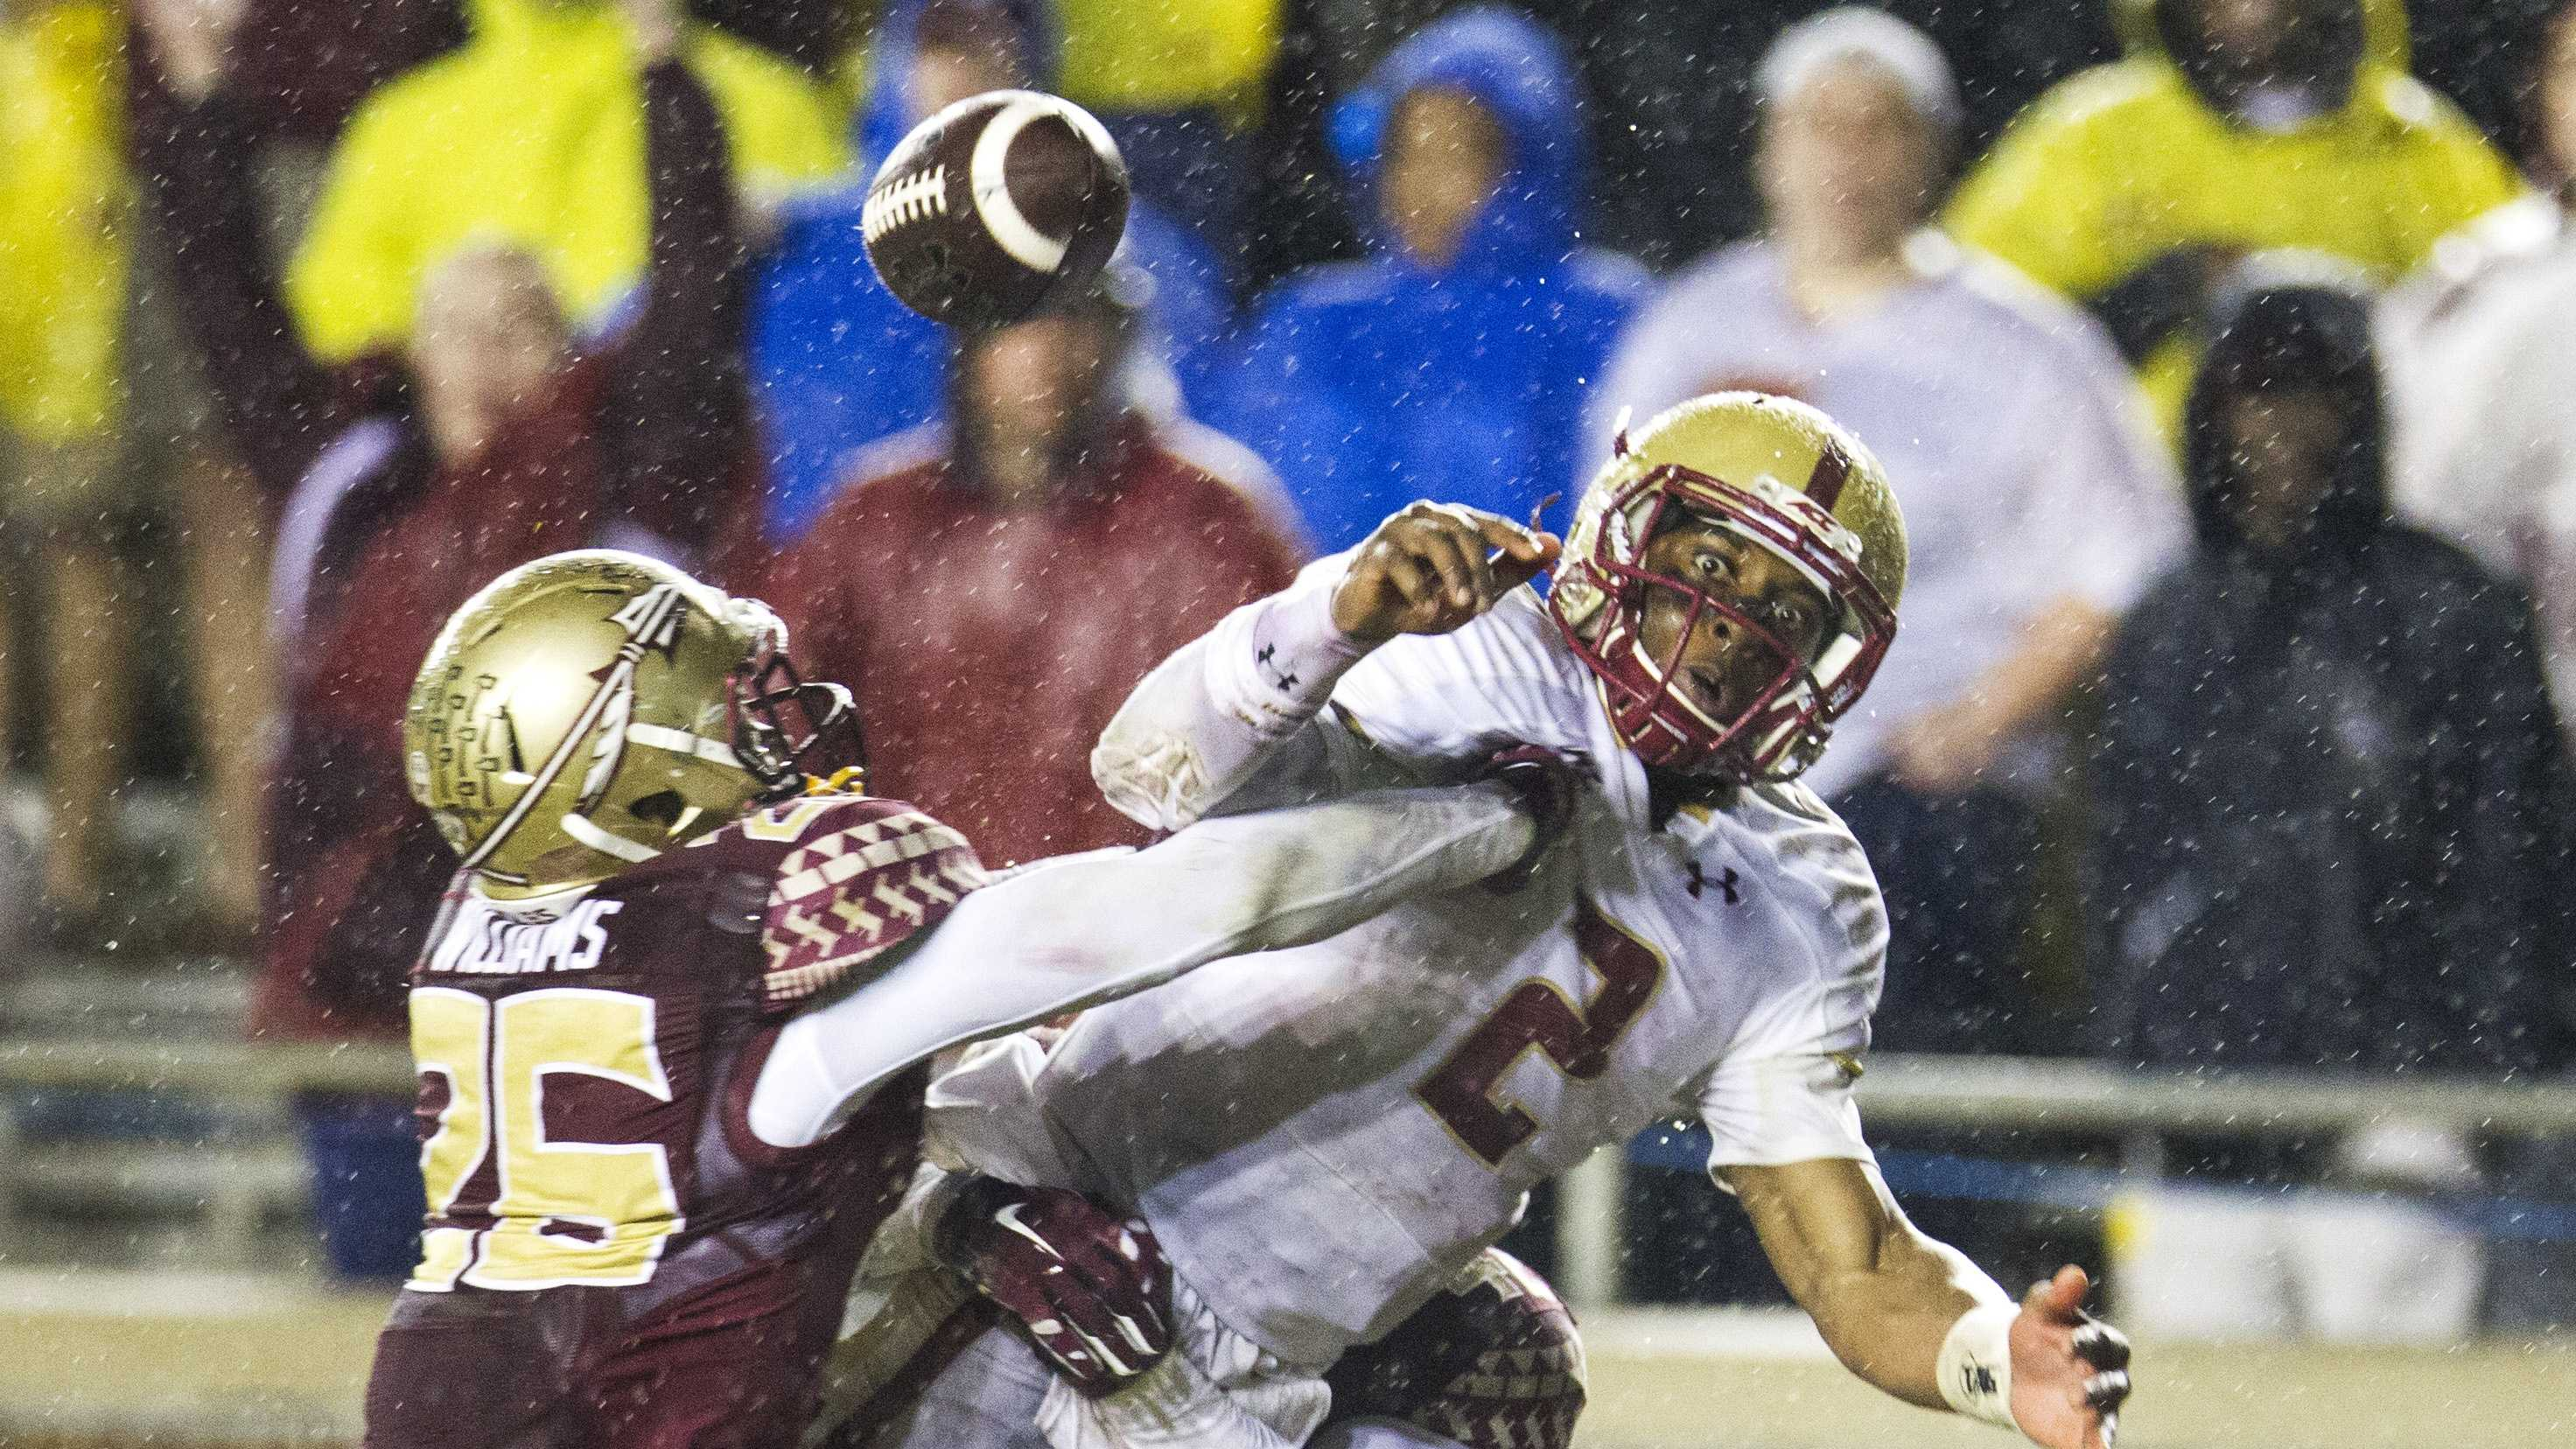 Florida State defenders P.J. Williams, left, and Lamarcus Brutus break up a pass intended for Boston College quarterback Tyler Murphy, right, in the end zone in the second half of an NCAA college football game in Tallahassee, Fla., Saturday, Nov. 22, 2014. Florida State won 20-17.